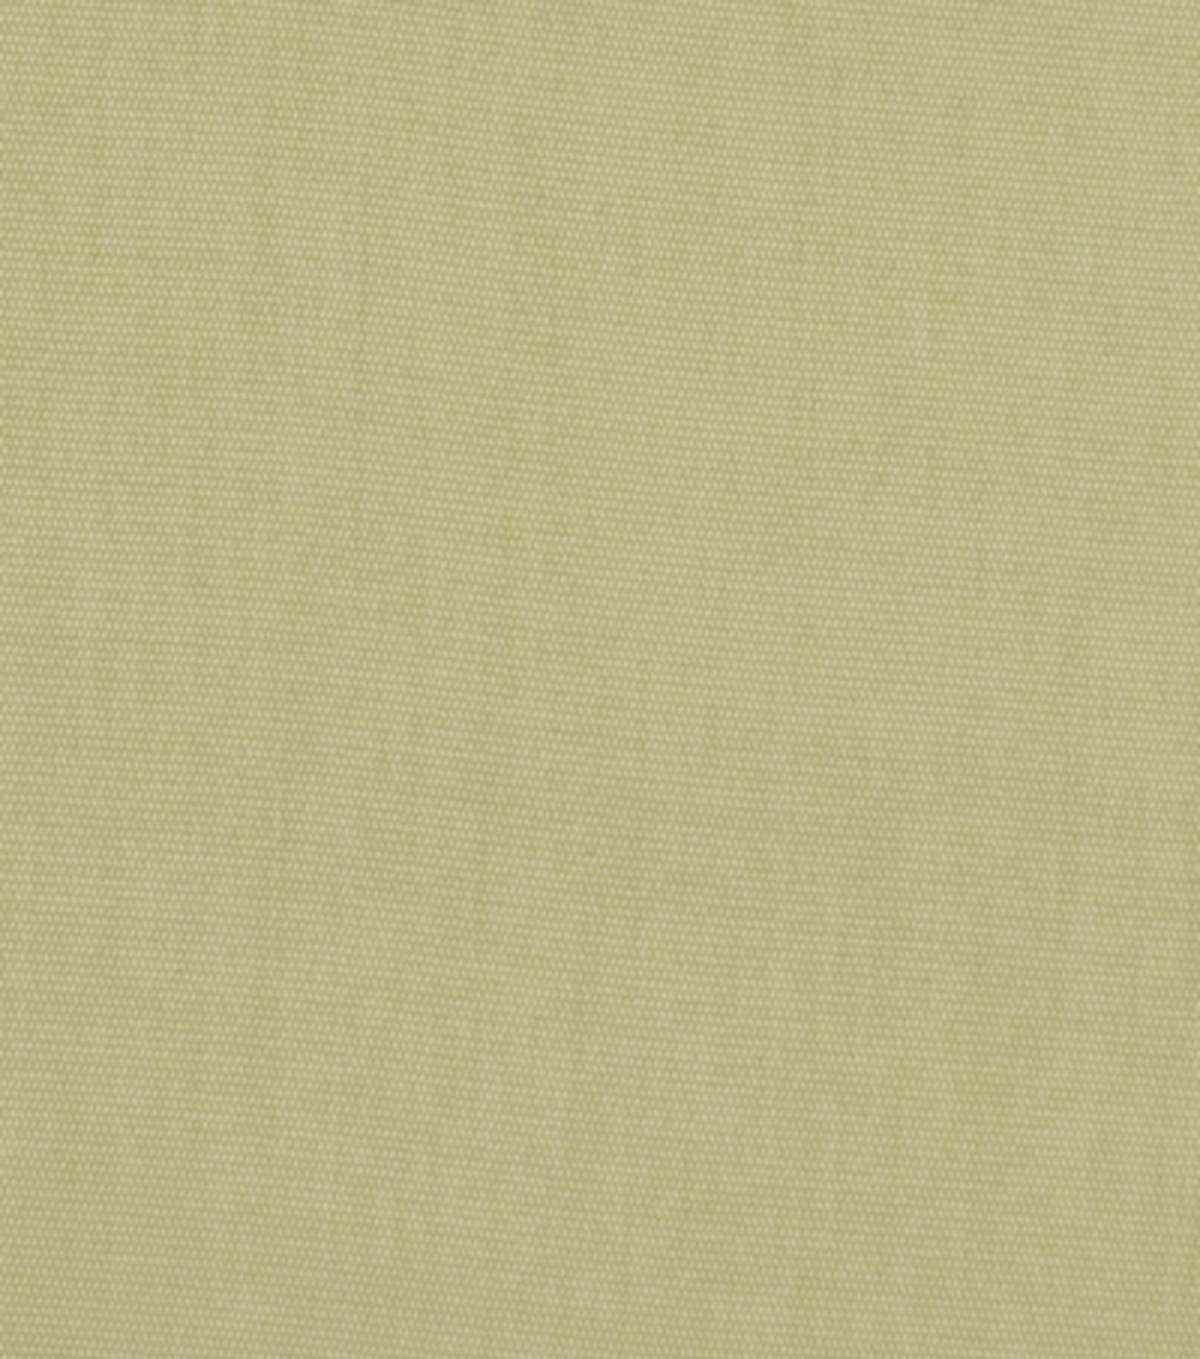 Home Decor 8\u0022x8\u0022 Fabric Swatch-Covington Ibiza 13 Raffia